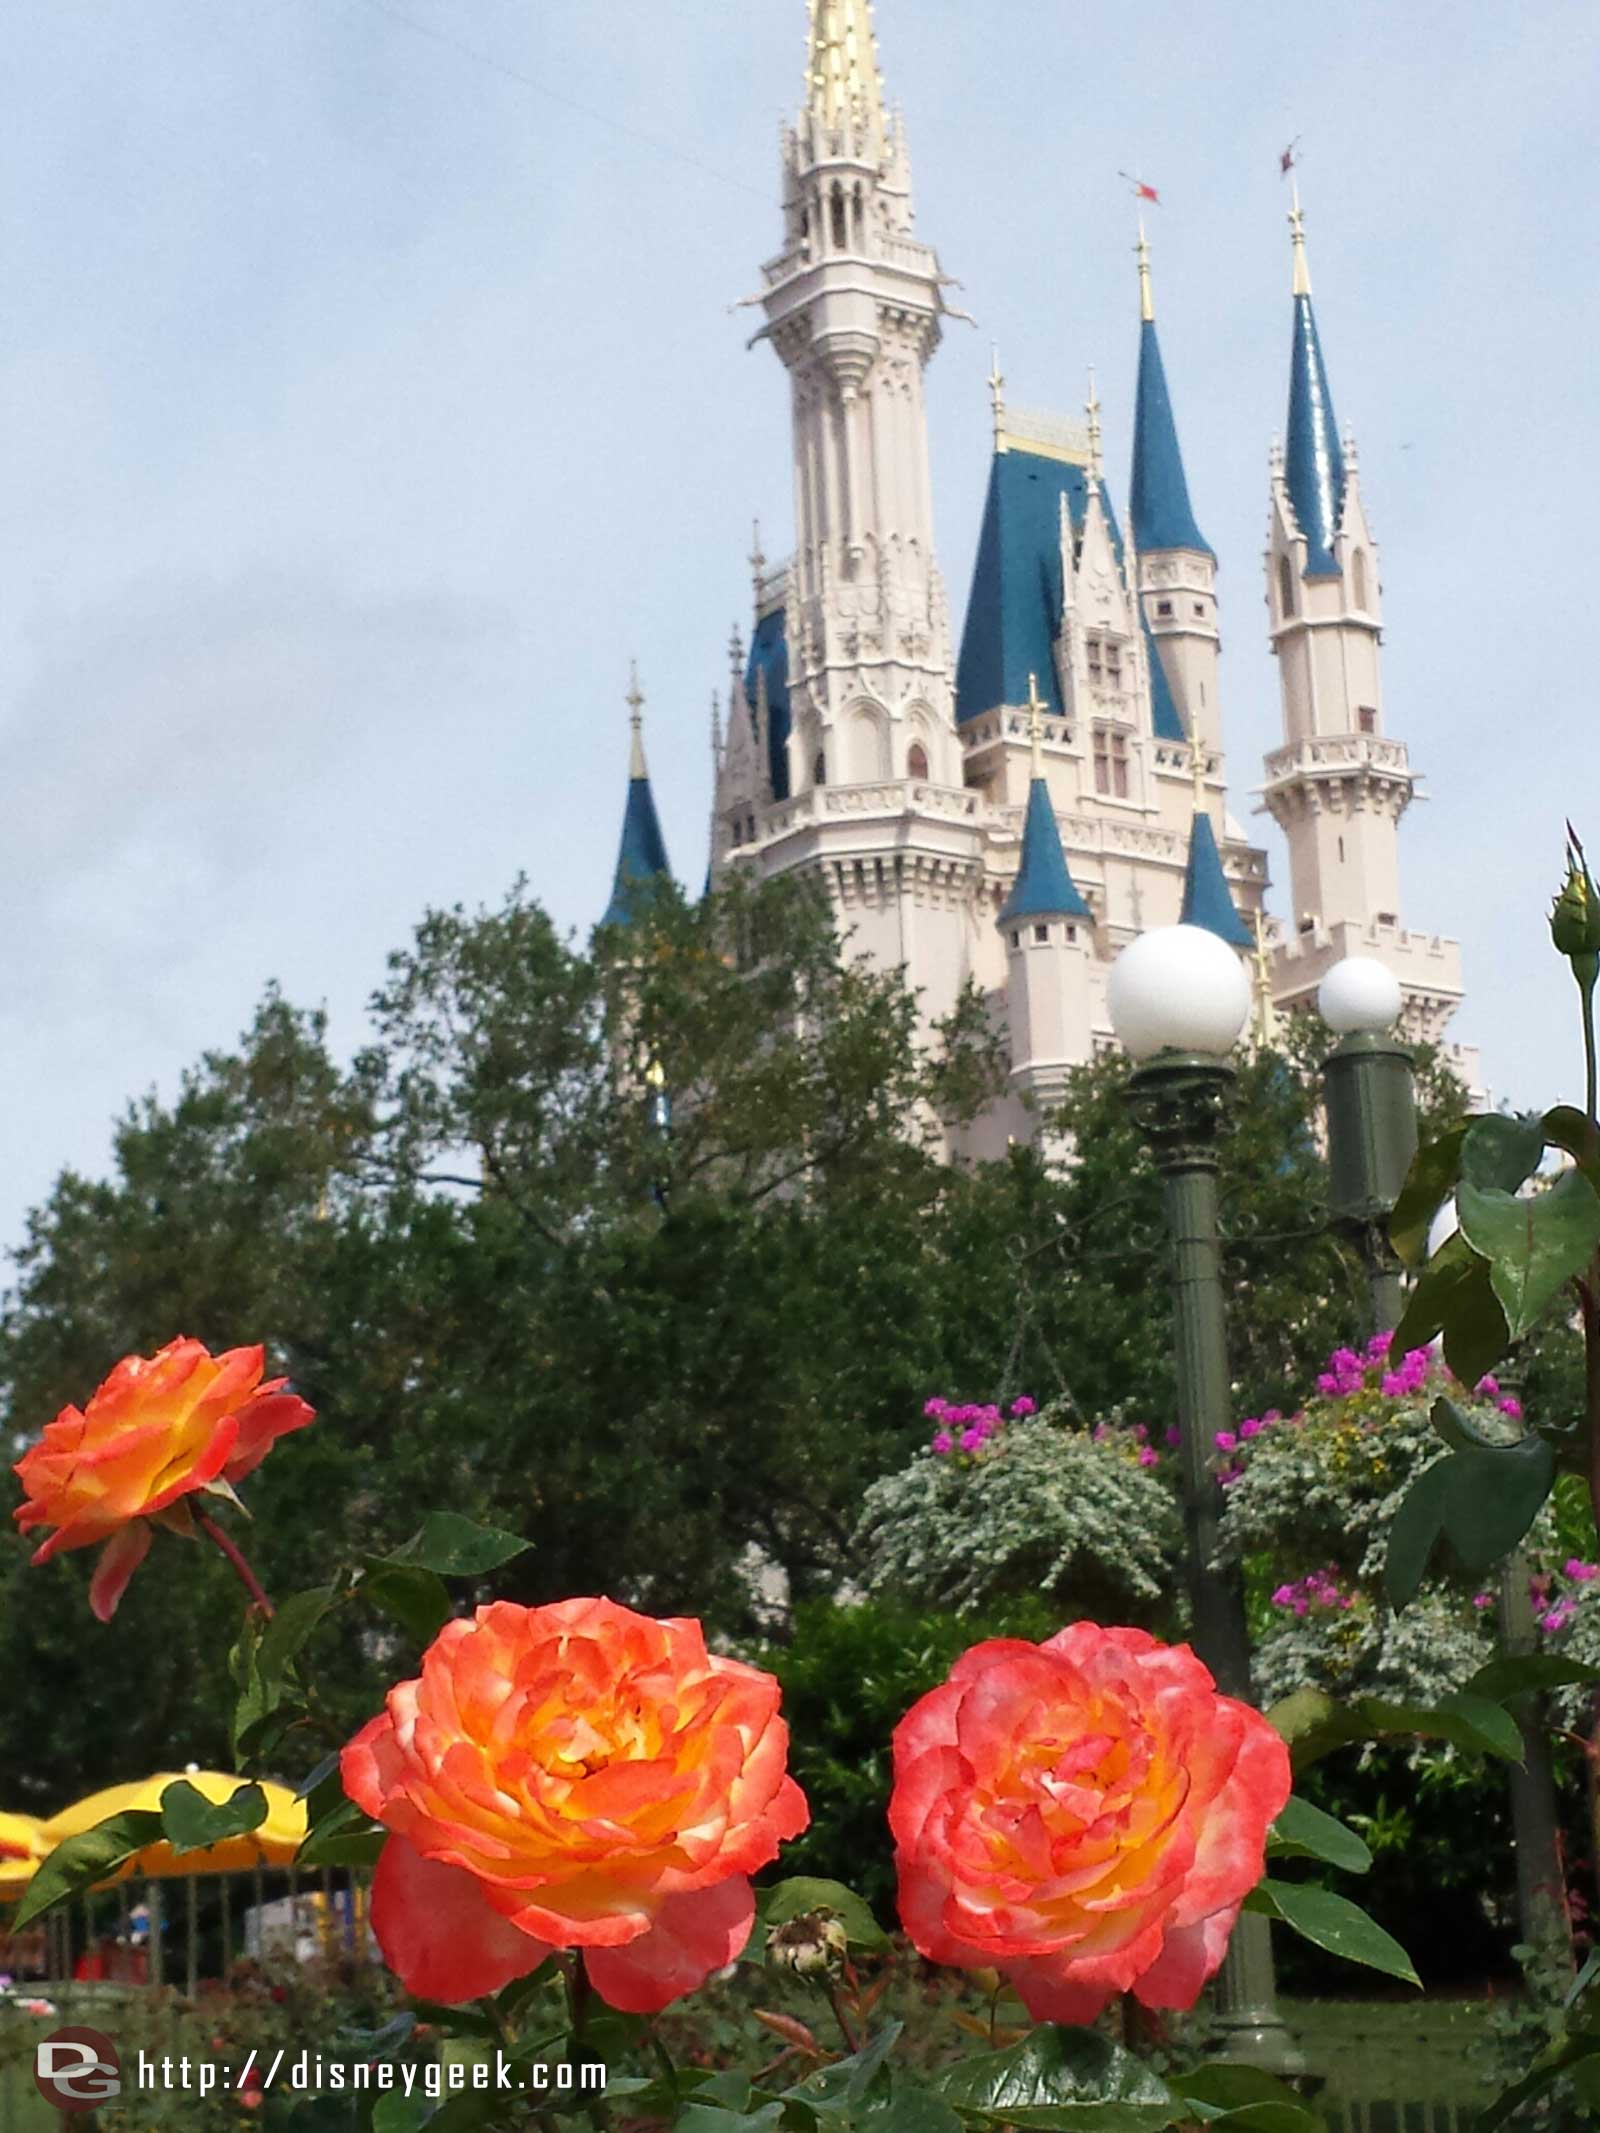 Cinderella Castle with roses in the foreground